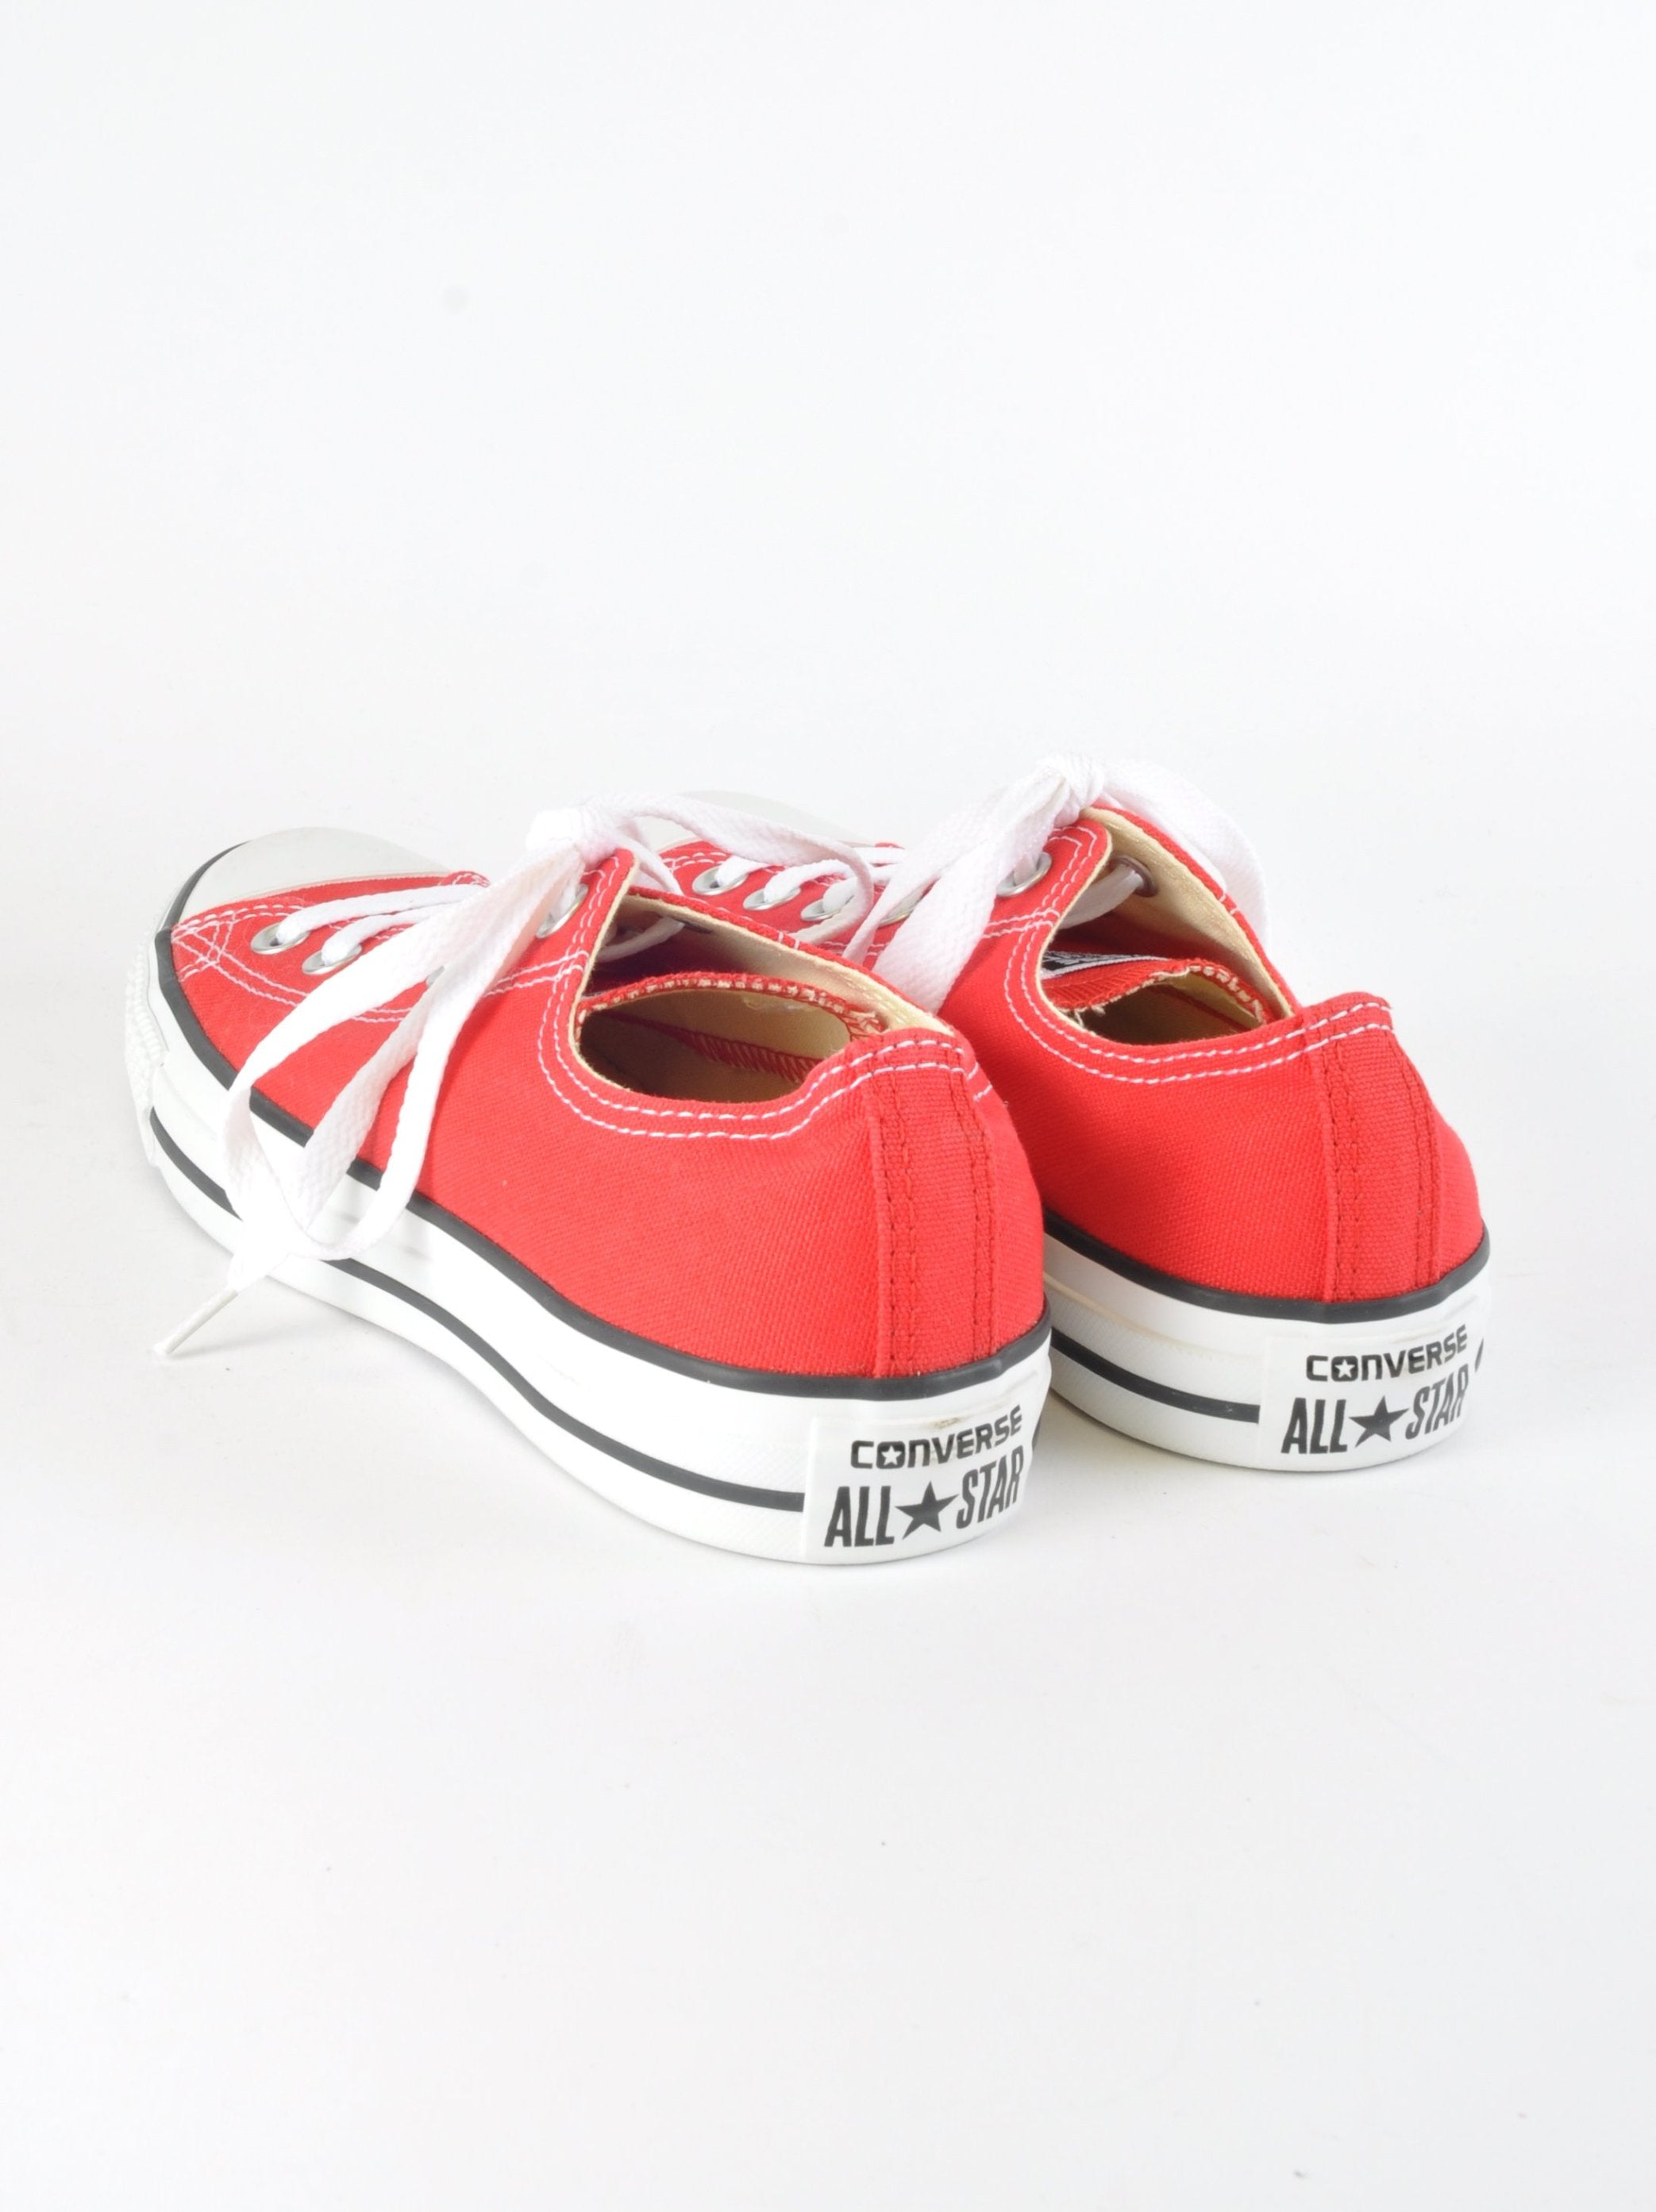 Red Classic Low Converse - New But Imperfect